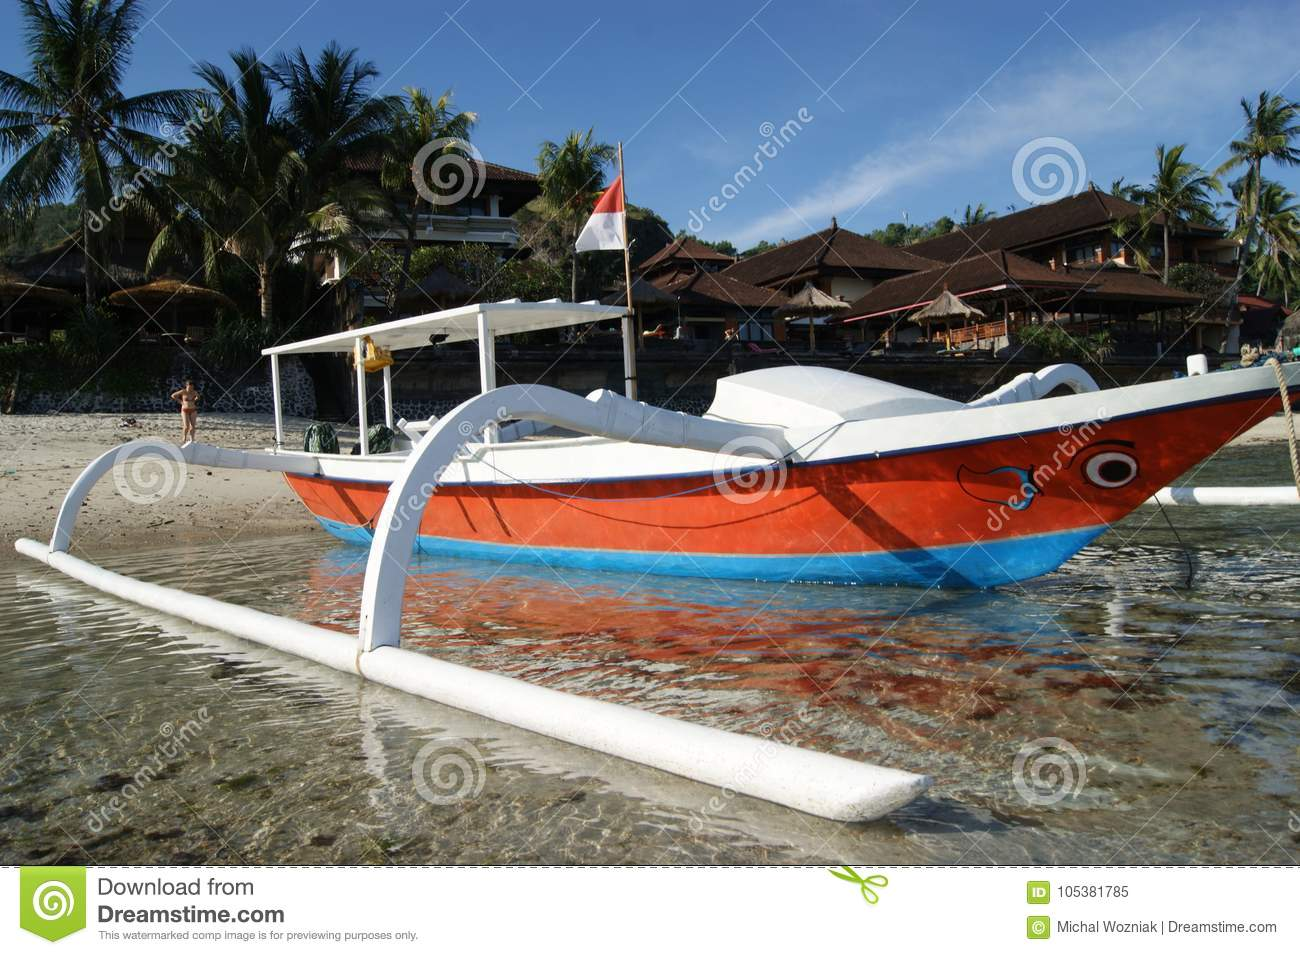 Fishing Trimaran in Bali, Indonesia